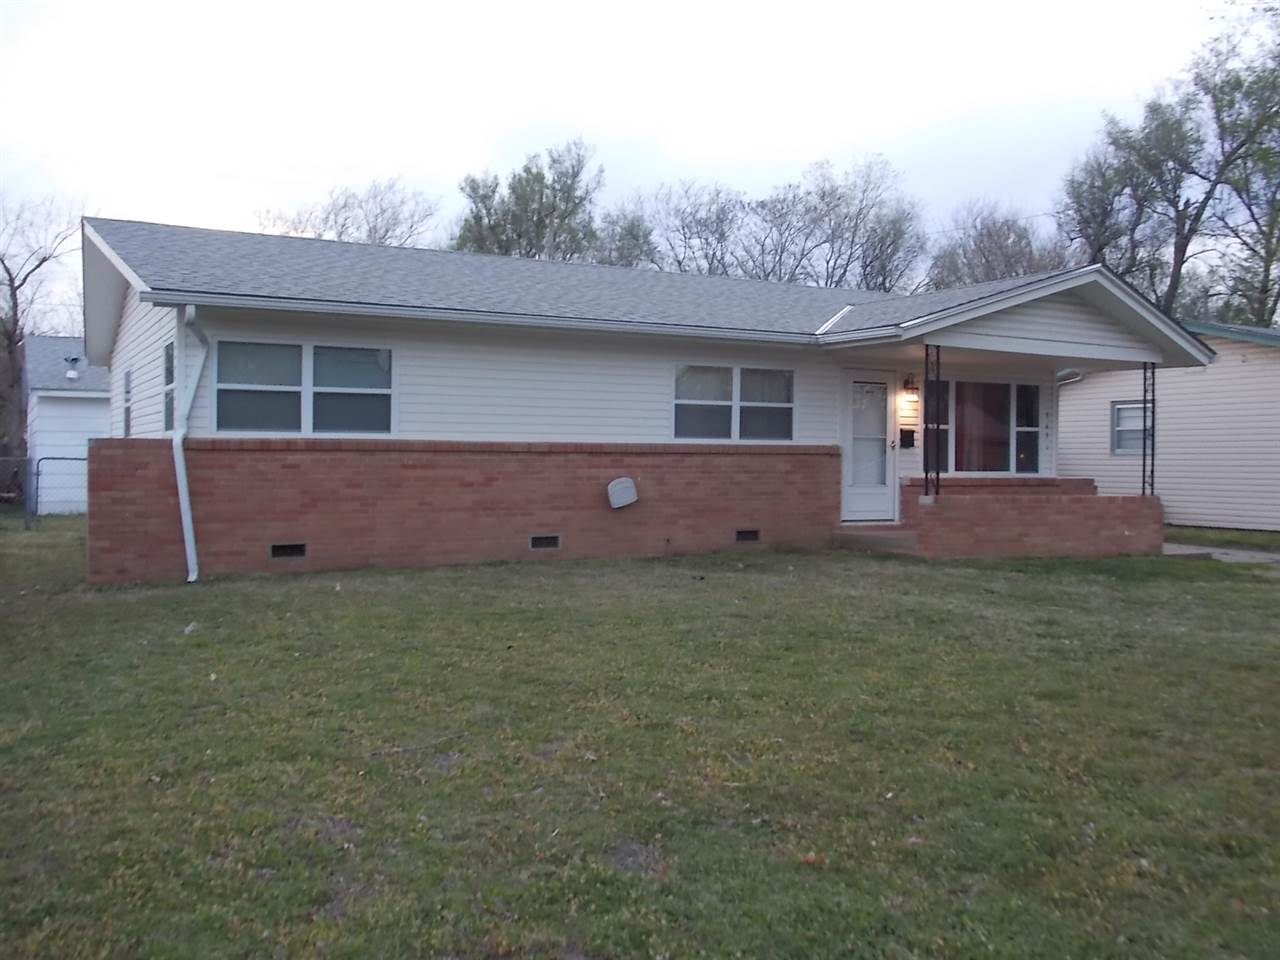 GREAT RANCH HOME WITH 4 BEDROOMS AND 1 AND 1/2 BATH WITH LOTS OF APPEAL FOR A FIRST TIME HOME BUYER.